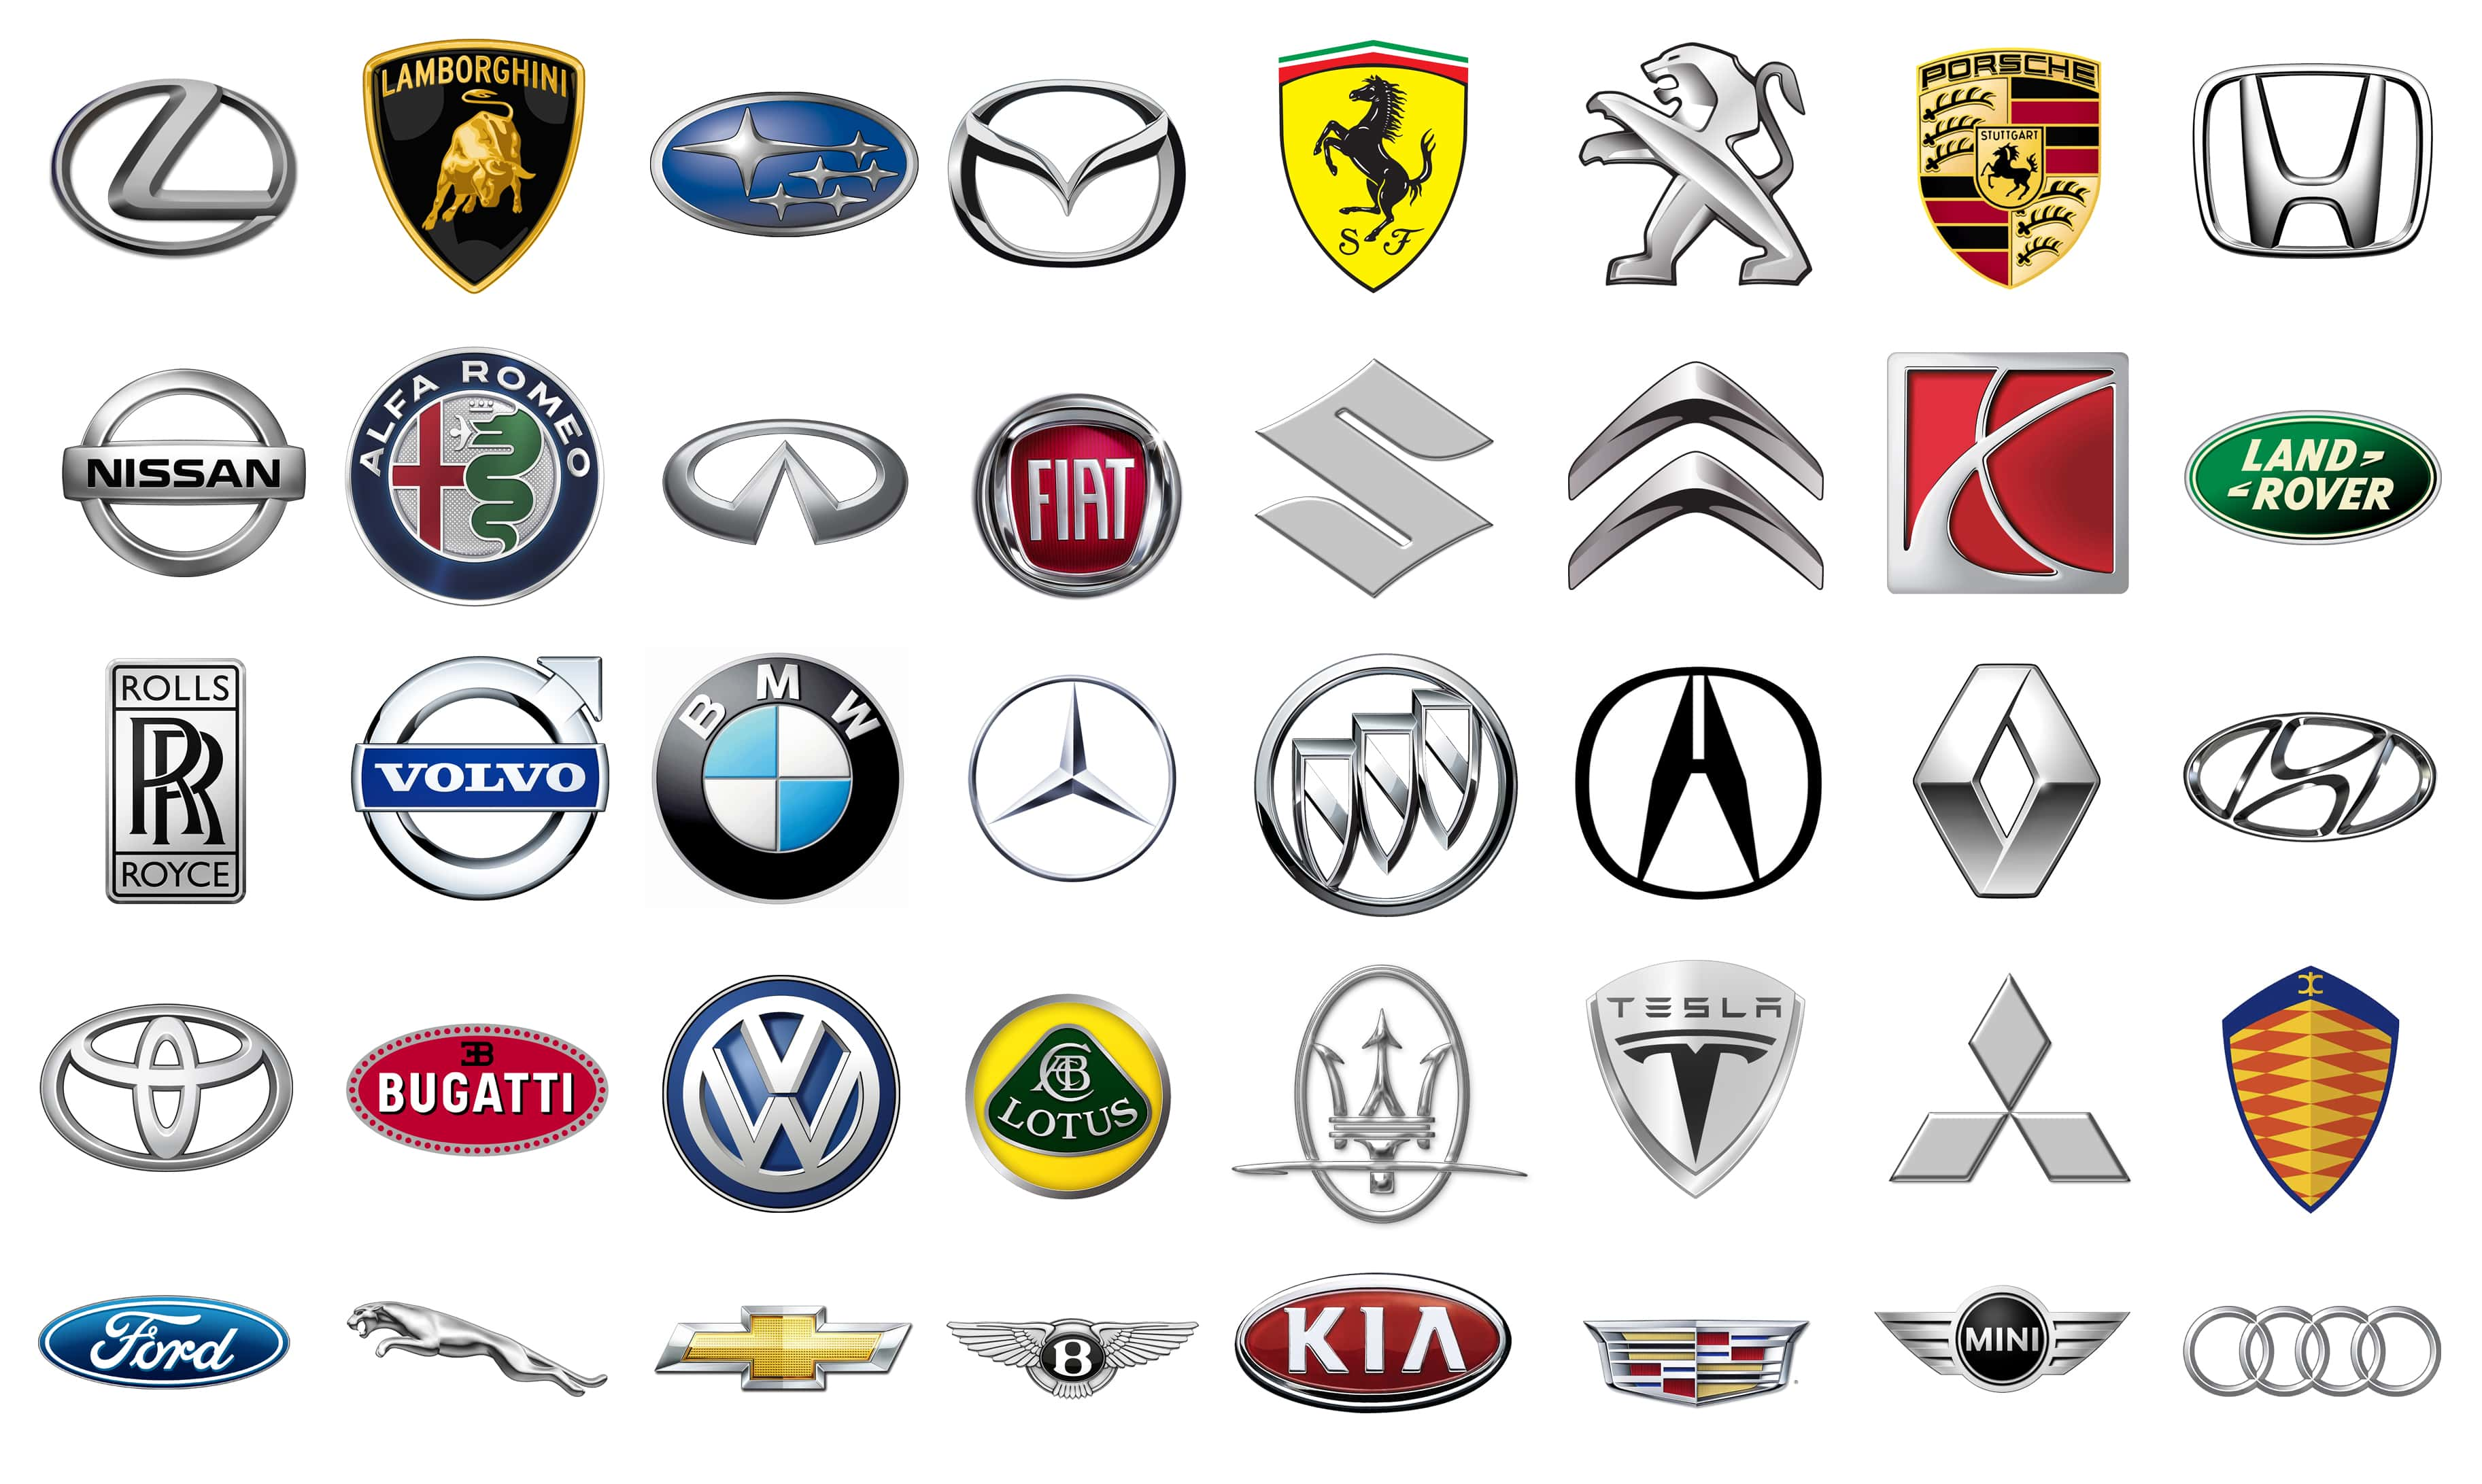 Weel Need Help With Your Car Weel Take Care Of It